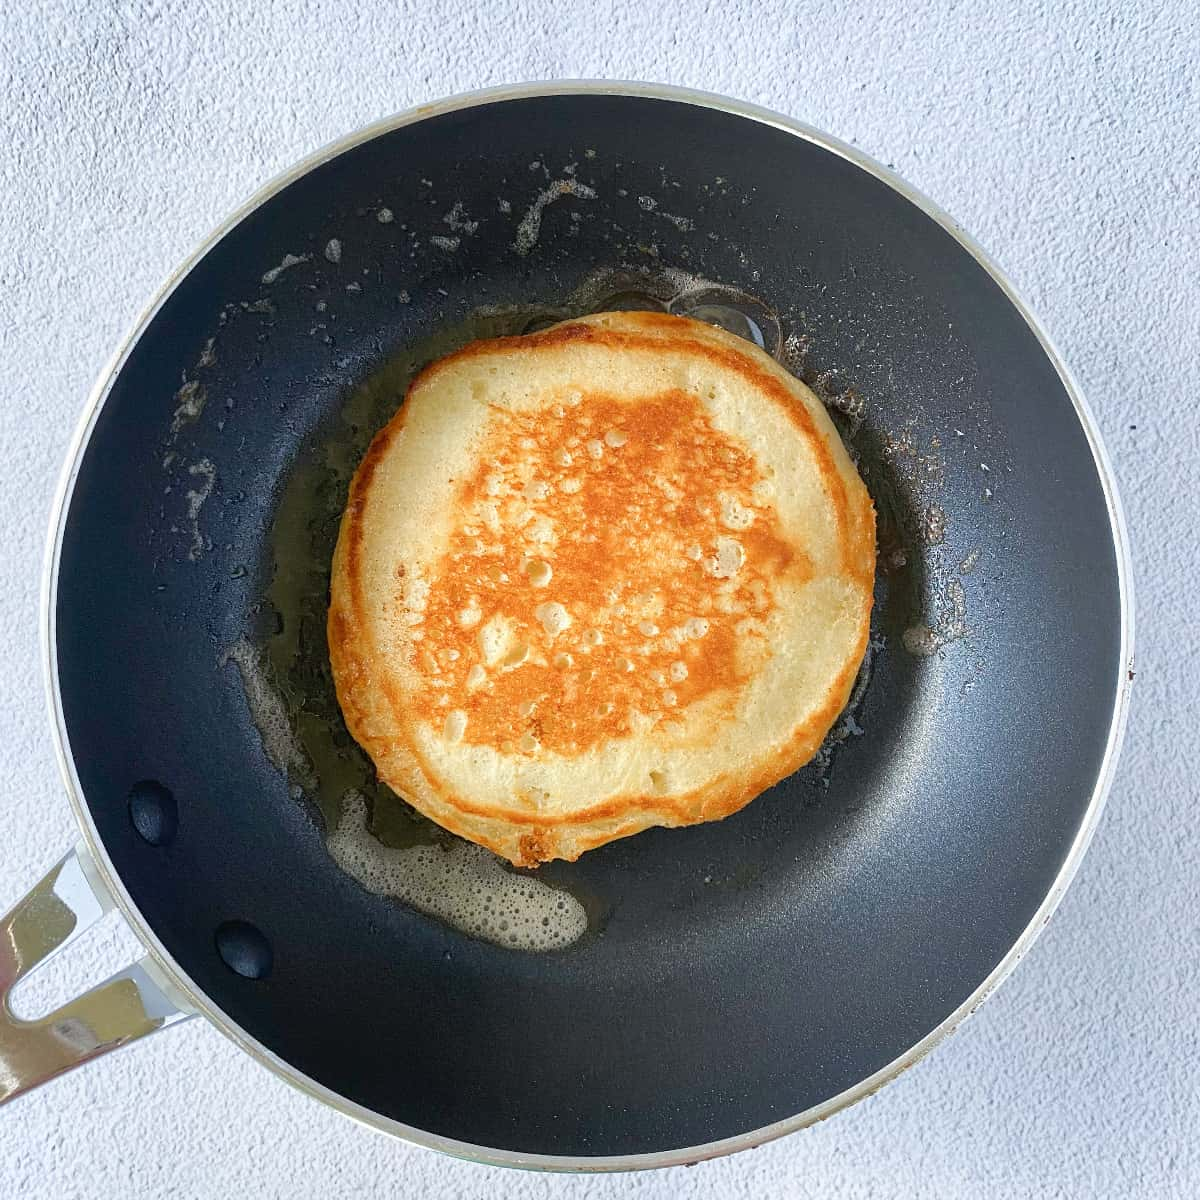 a perfectly browned and golden olive oil buttermilk pancake